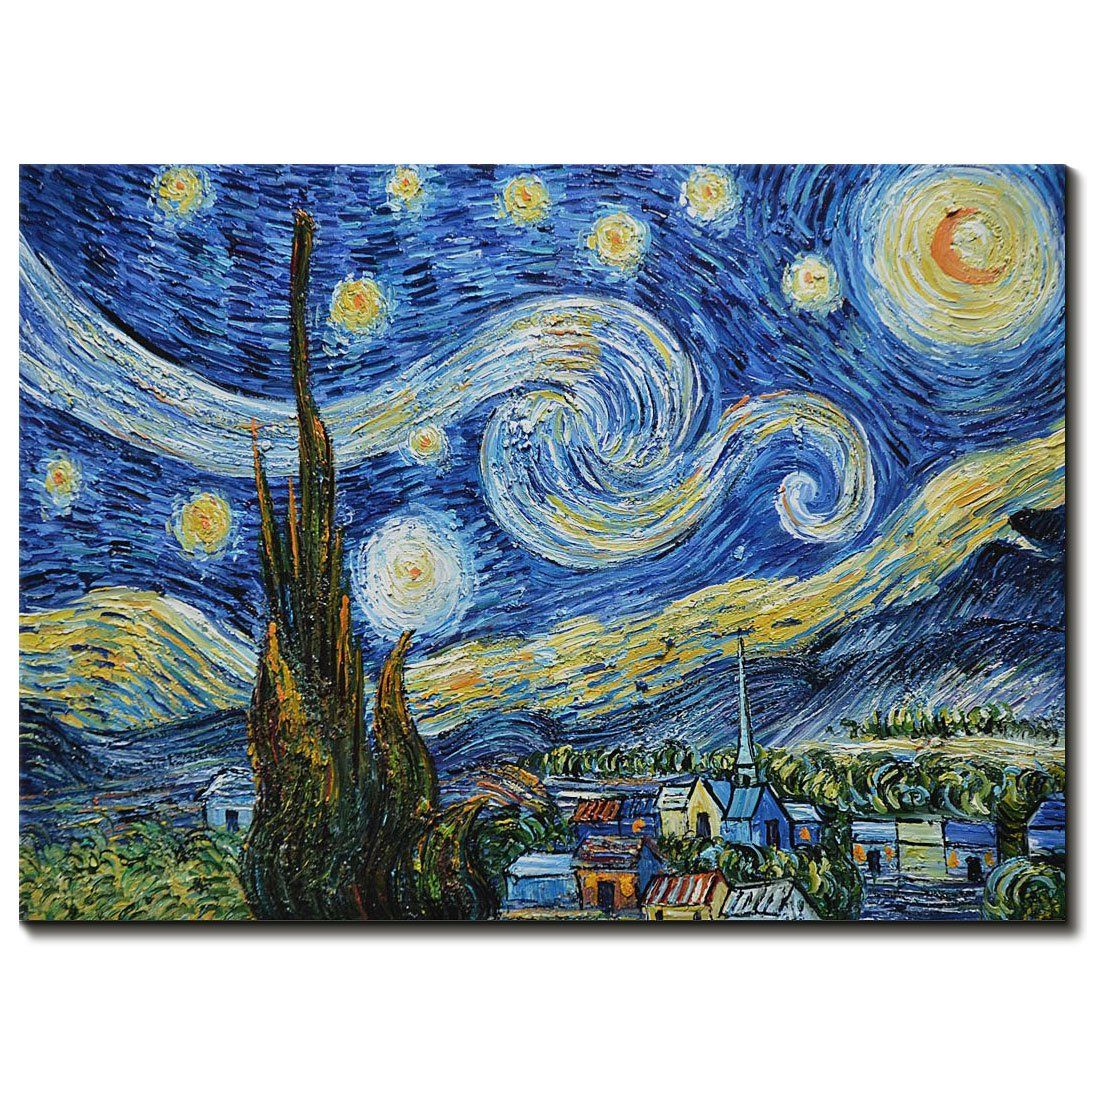 Amei Art Paintings 36x48 Inch The Starry Night By Vincent Van Gogh Oil Painting Modern Home Decor Oil Painting On Canvas Canvas Painting Starry Night Van Gogh